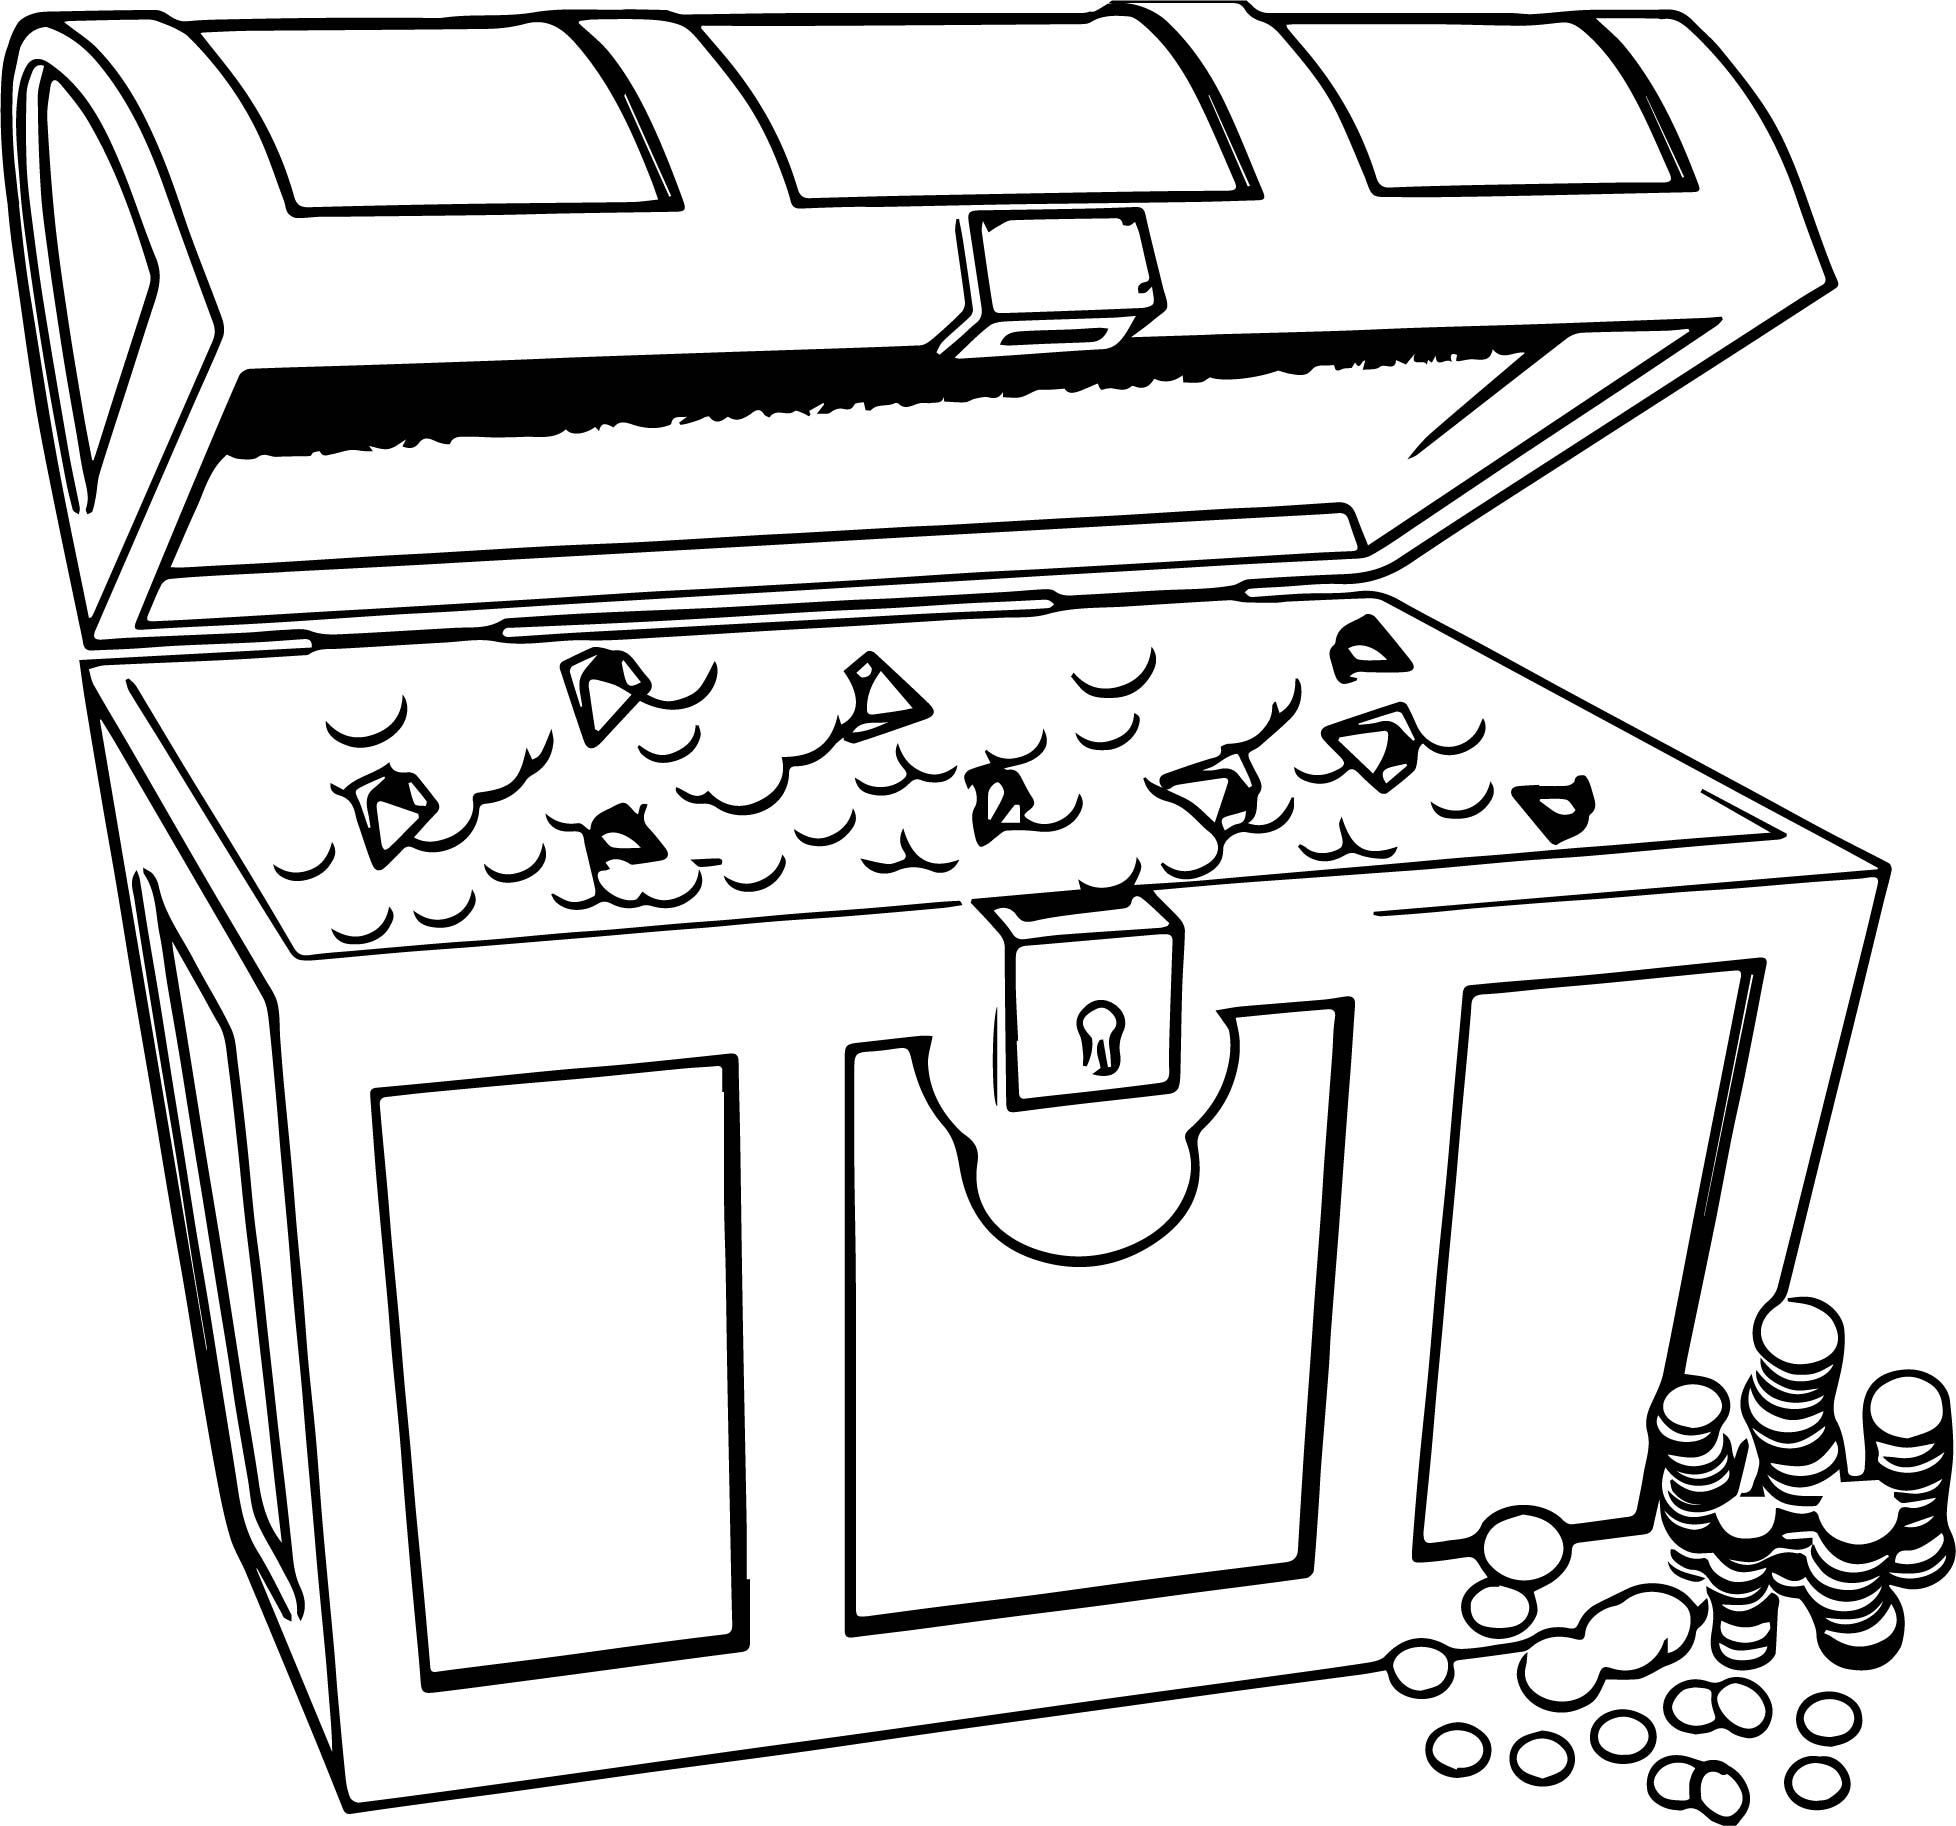 any treasur chest money coloring page